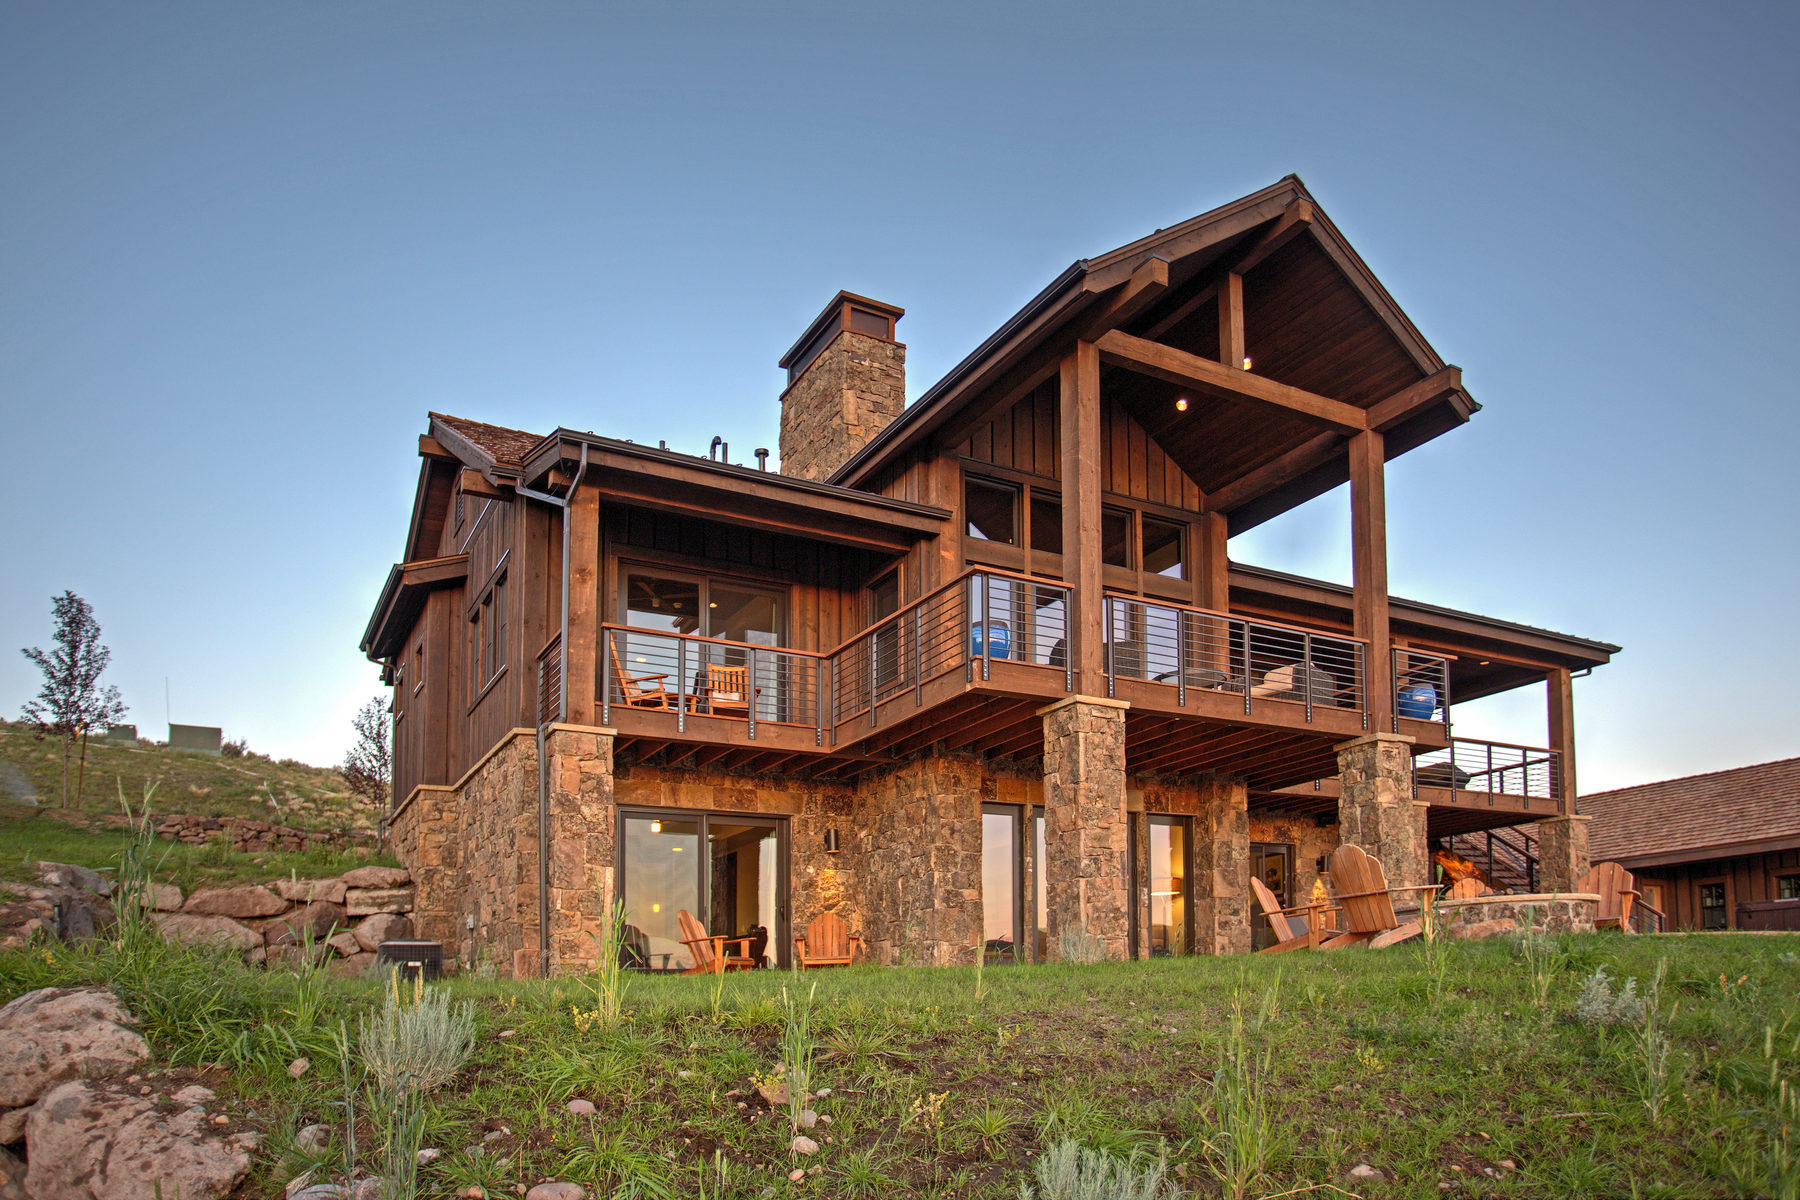 Casa Unifamiliar por un Venta en Juniper Cabin with Spectacular Views 7021 N Rees Jones Way #169 Heber City, Utah, 84032 Estados Unidos